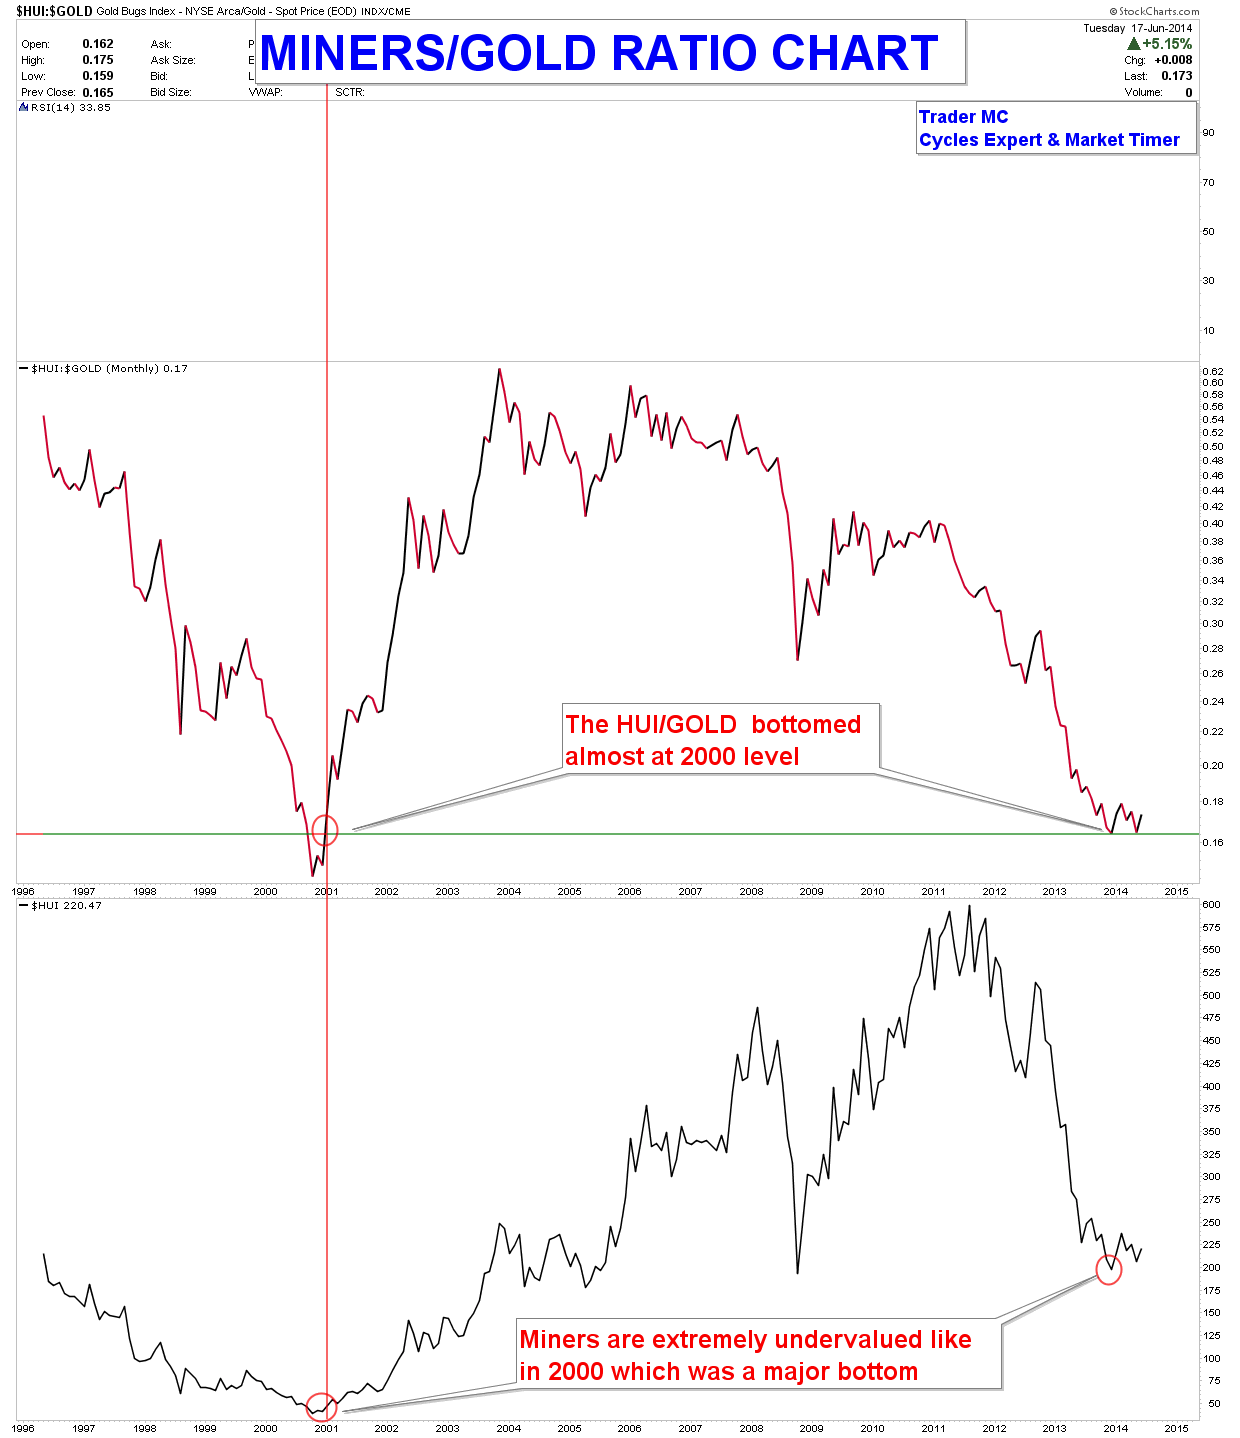 MINERS-GOLD-RATIO-CHARTS-JUN-18